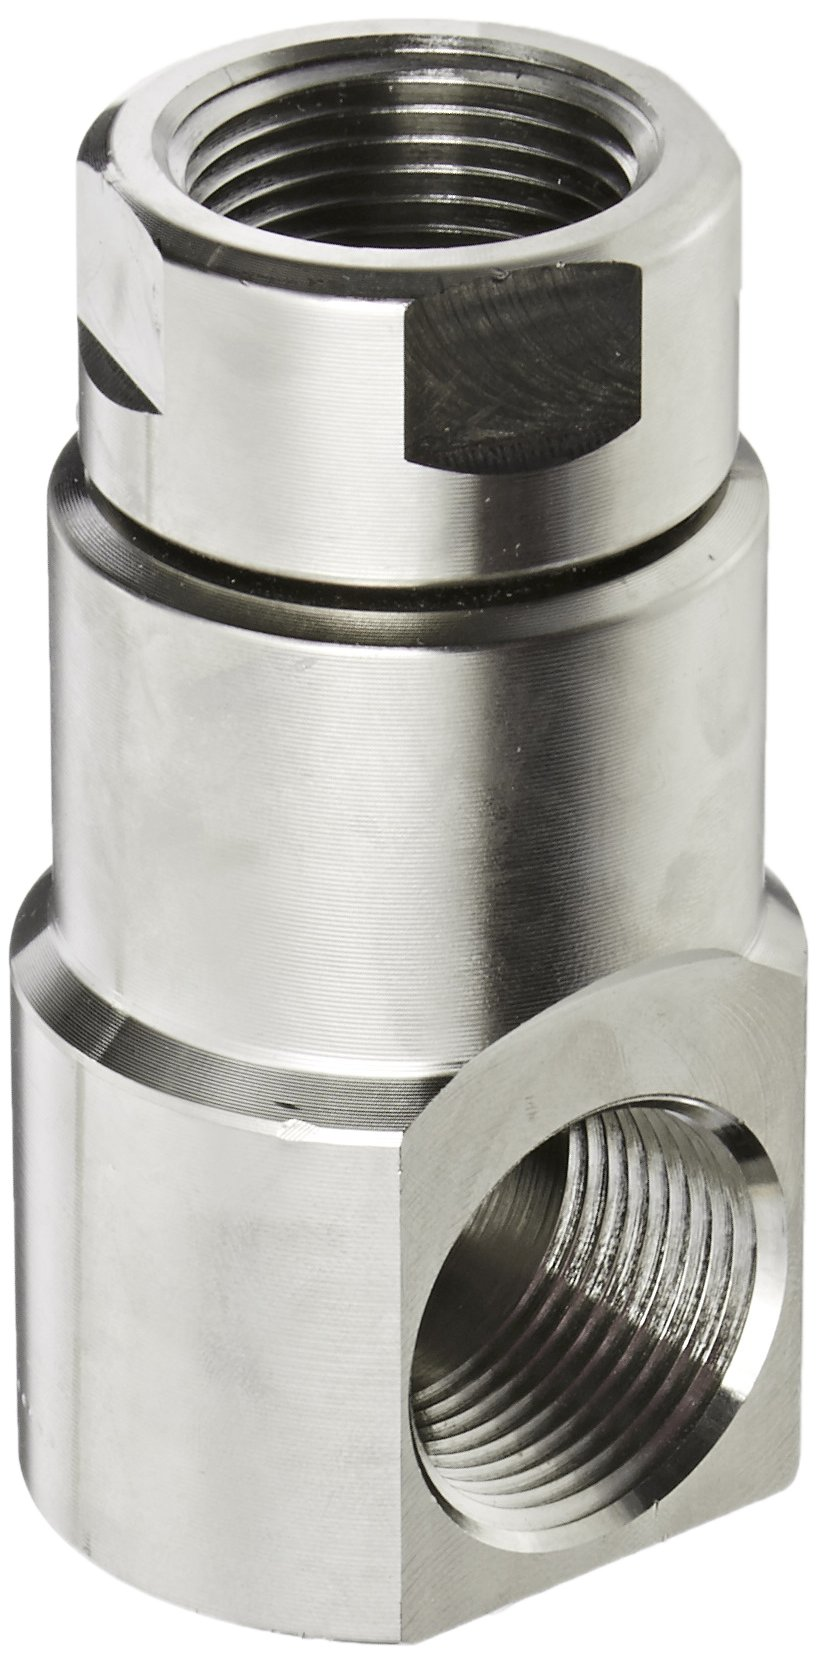 Coxreels 15257-1 Replacement Swivel with AFLAS Seal, 1'' NPT by Coxreels (Image #2)